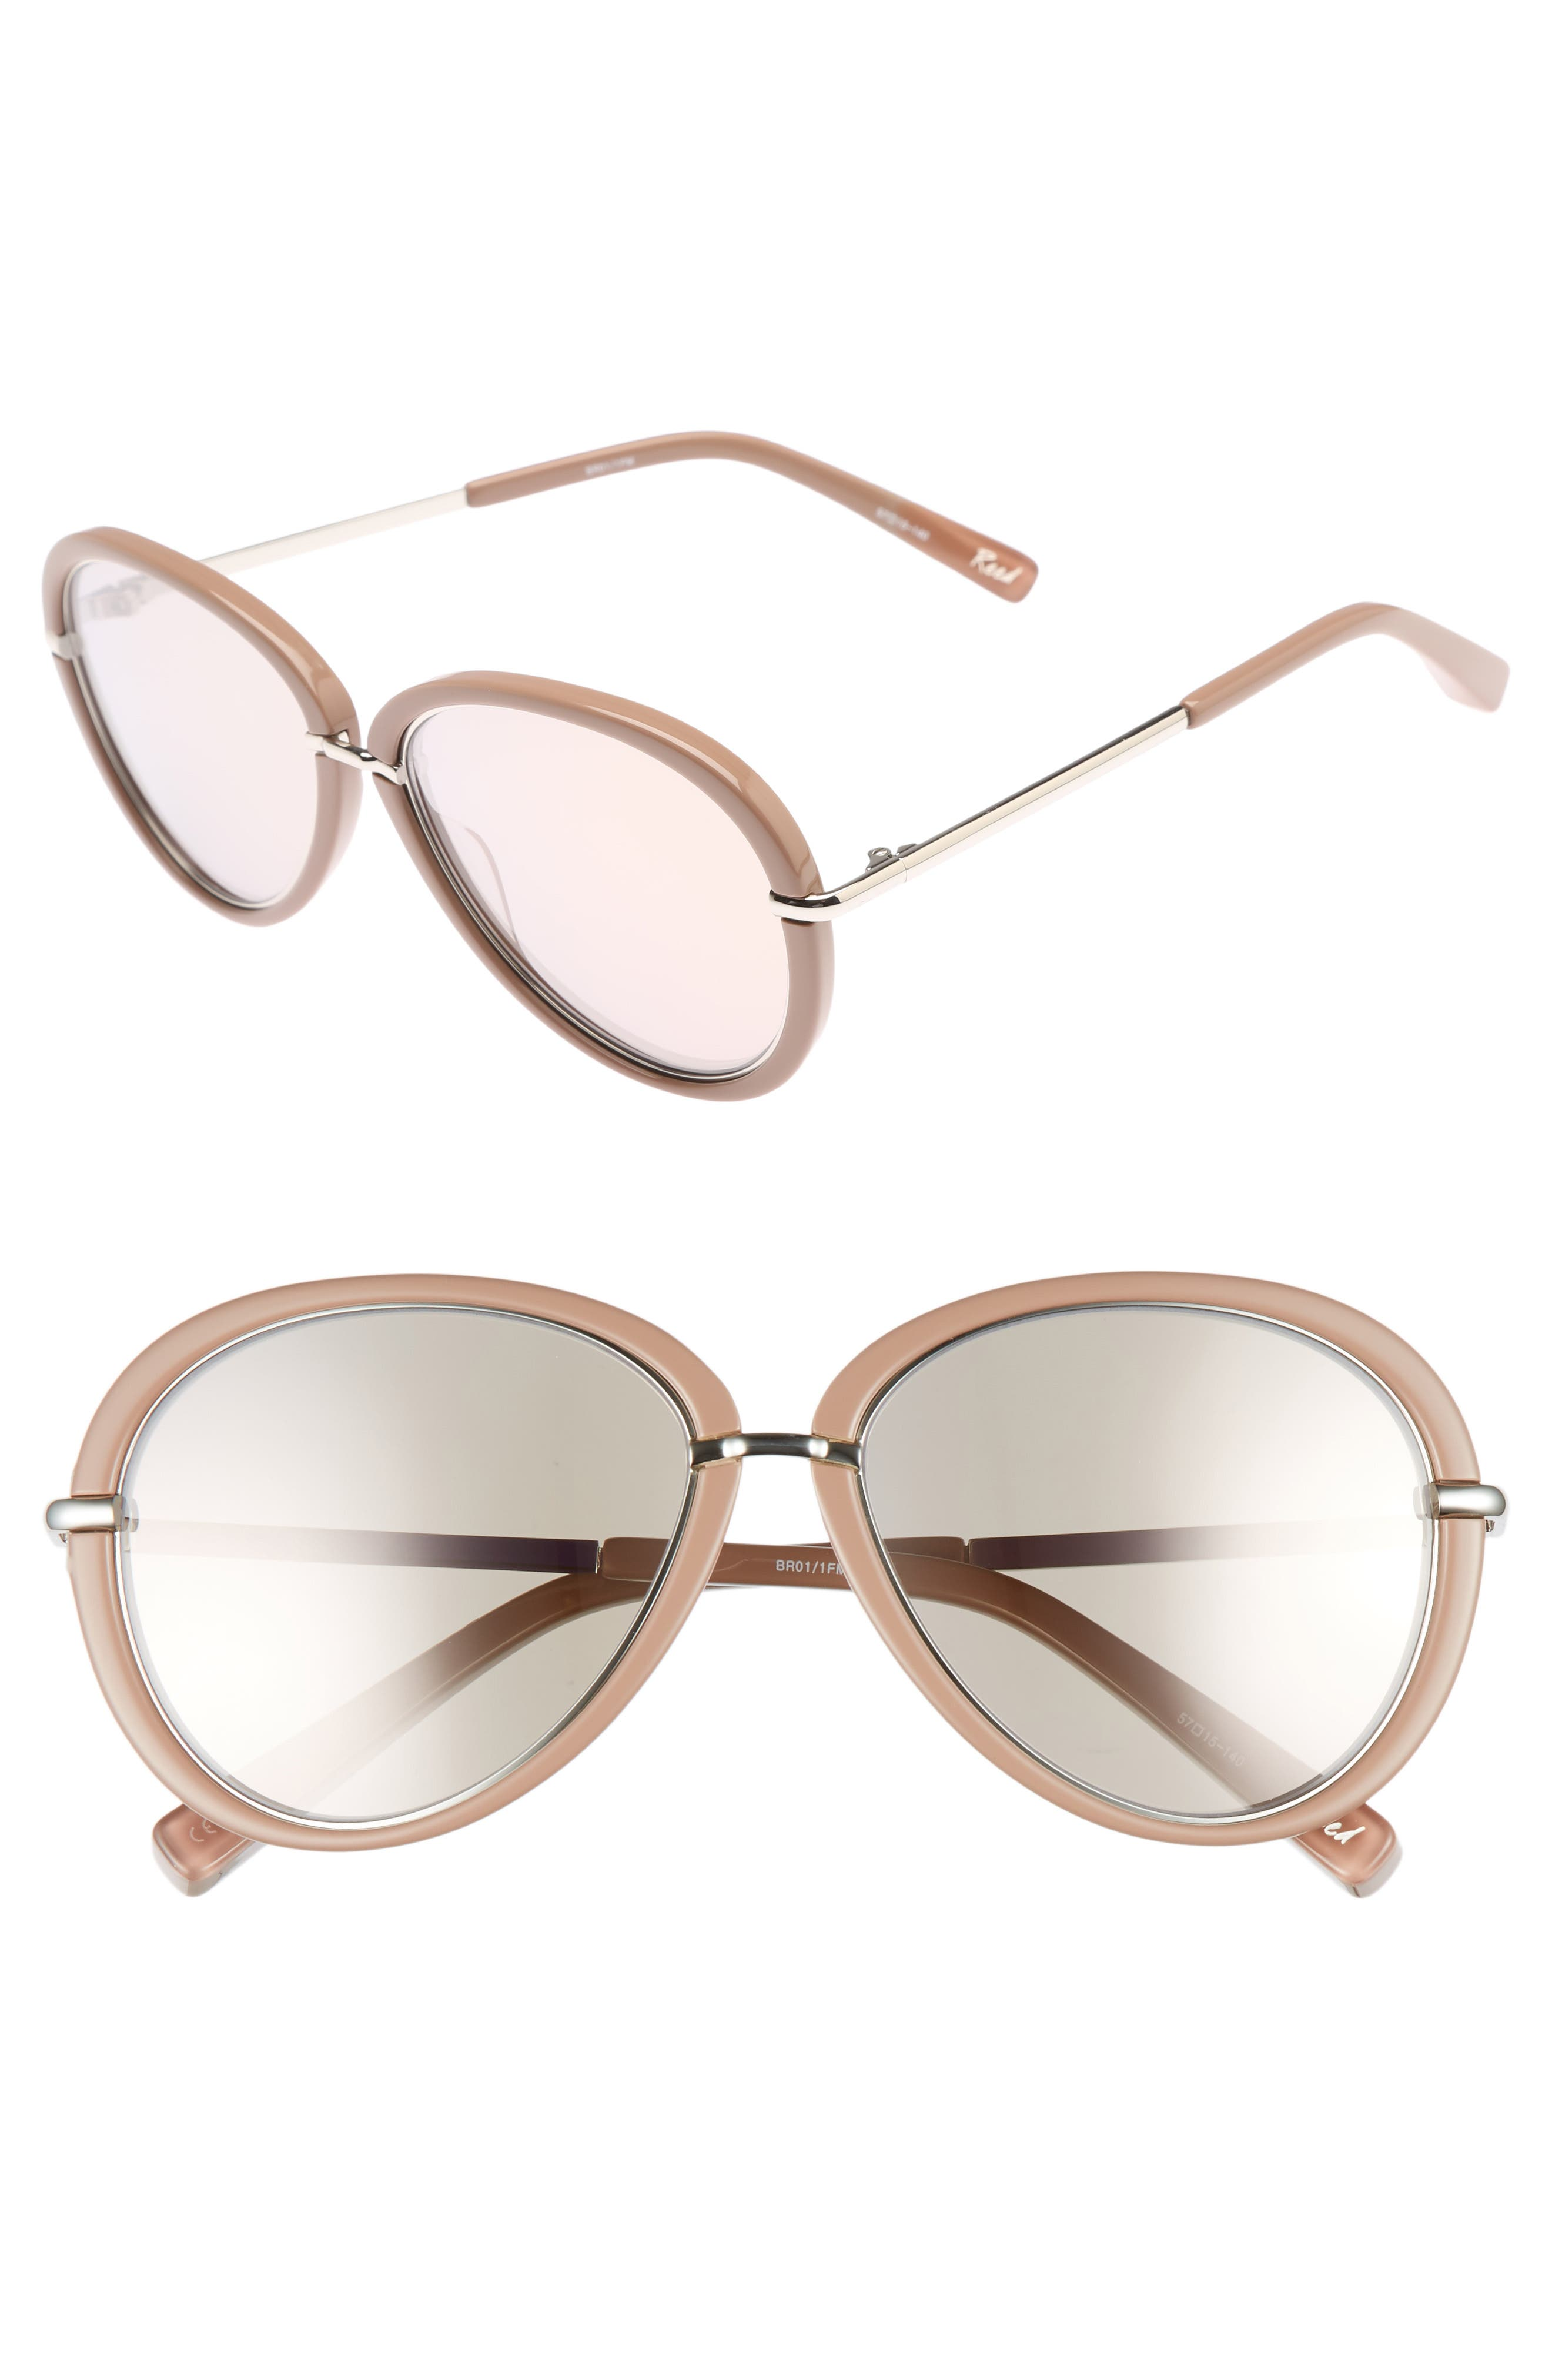 Reed 57mm Aviator Sunglasses,                         Main,                         color,